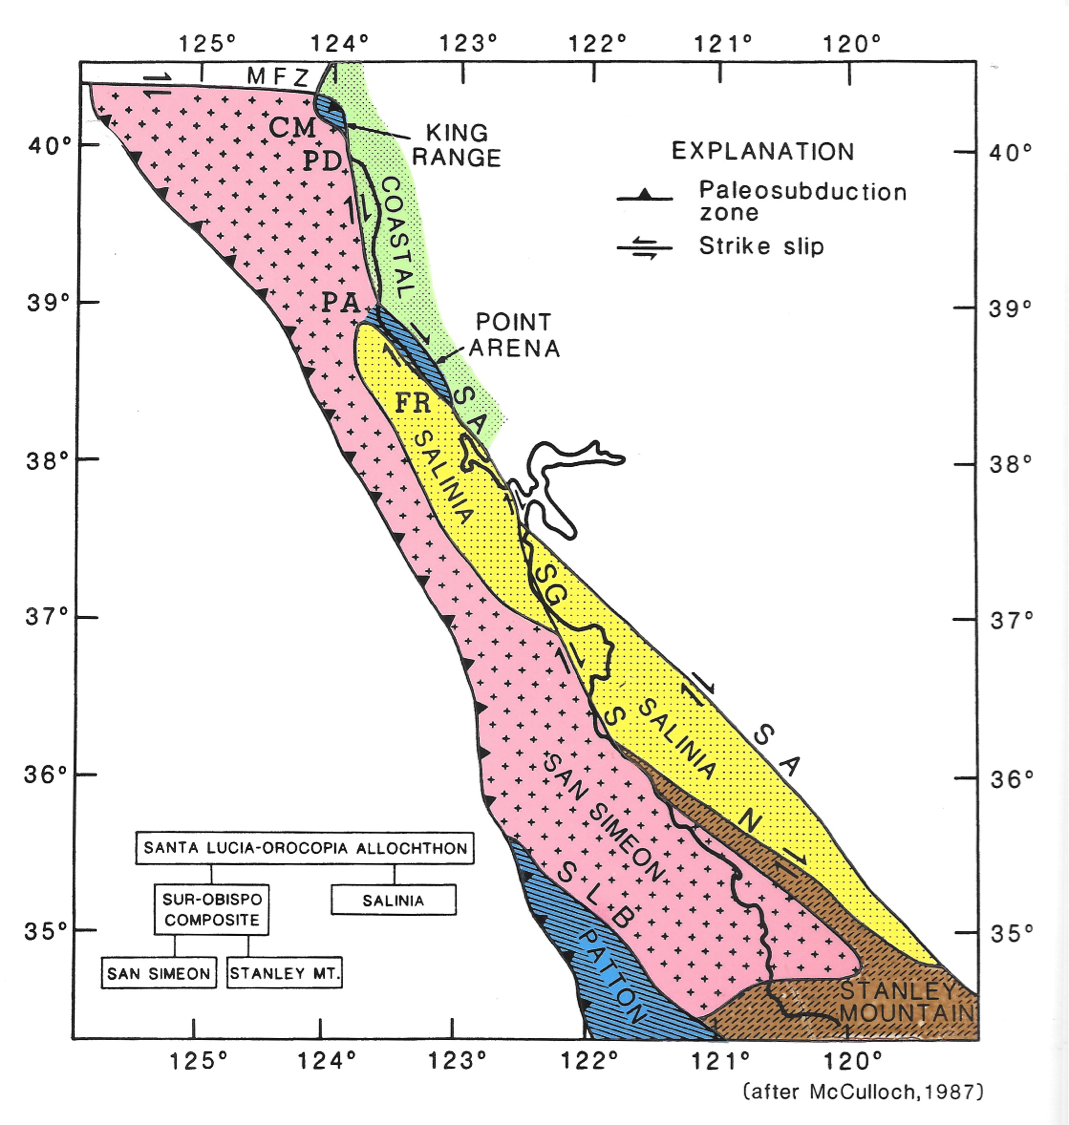 faults along western CA